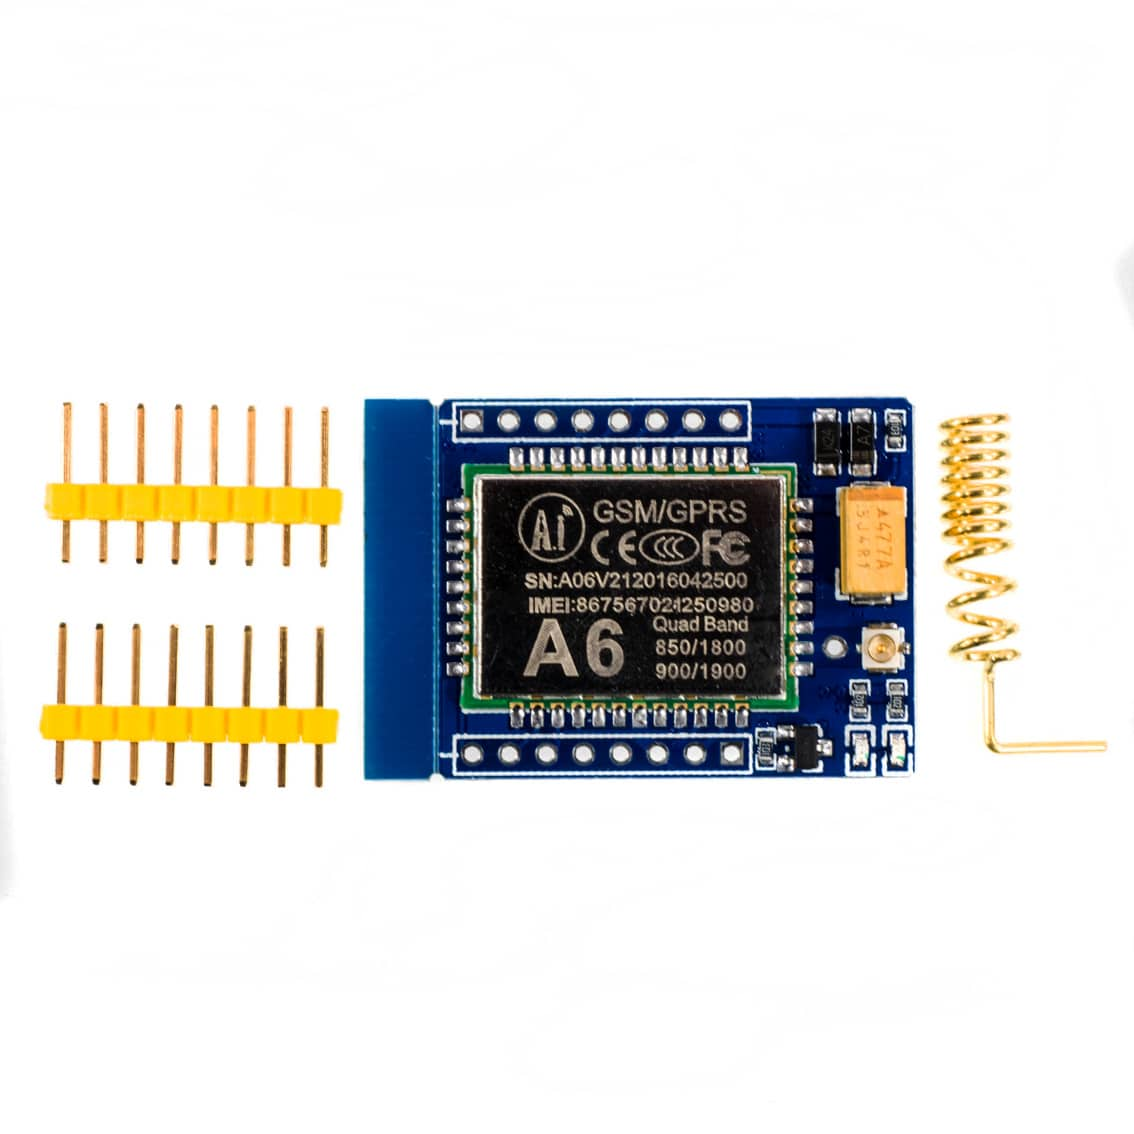 A6 Mini GPRS/GSM Module Board with Antenna and Sim Card Slot Quad Band 850  900 1800 1900 MHz